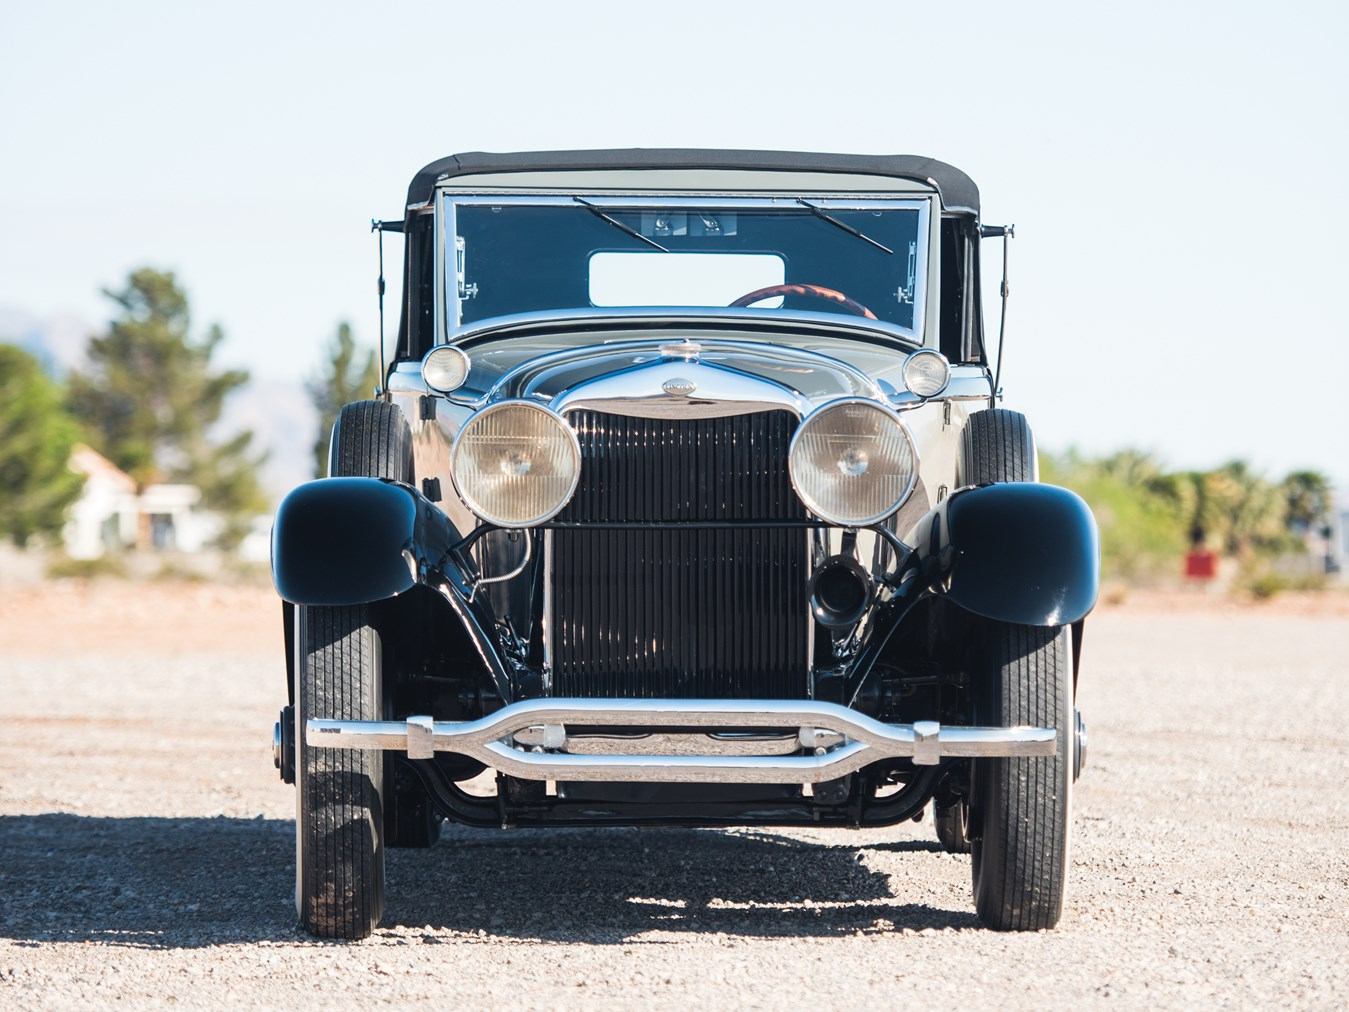 Dignified, yet with a sporting flair. This was a stylish motor car.